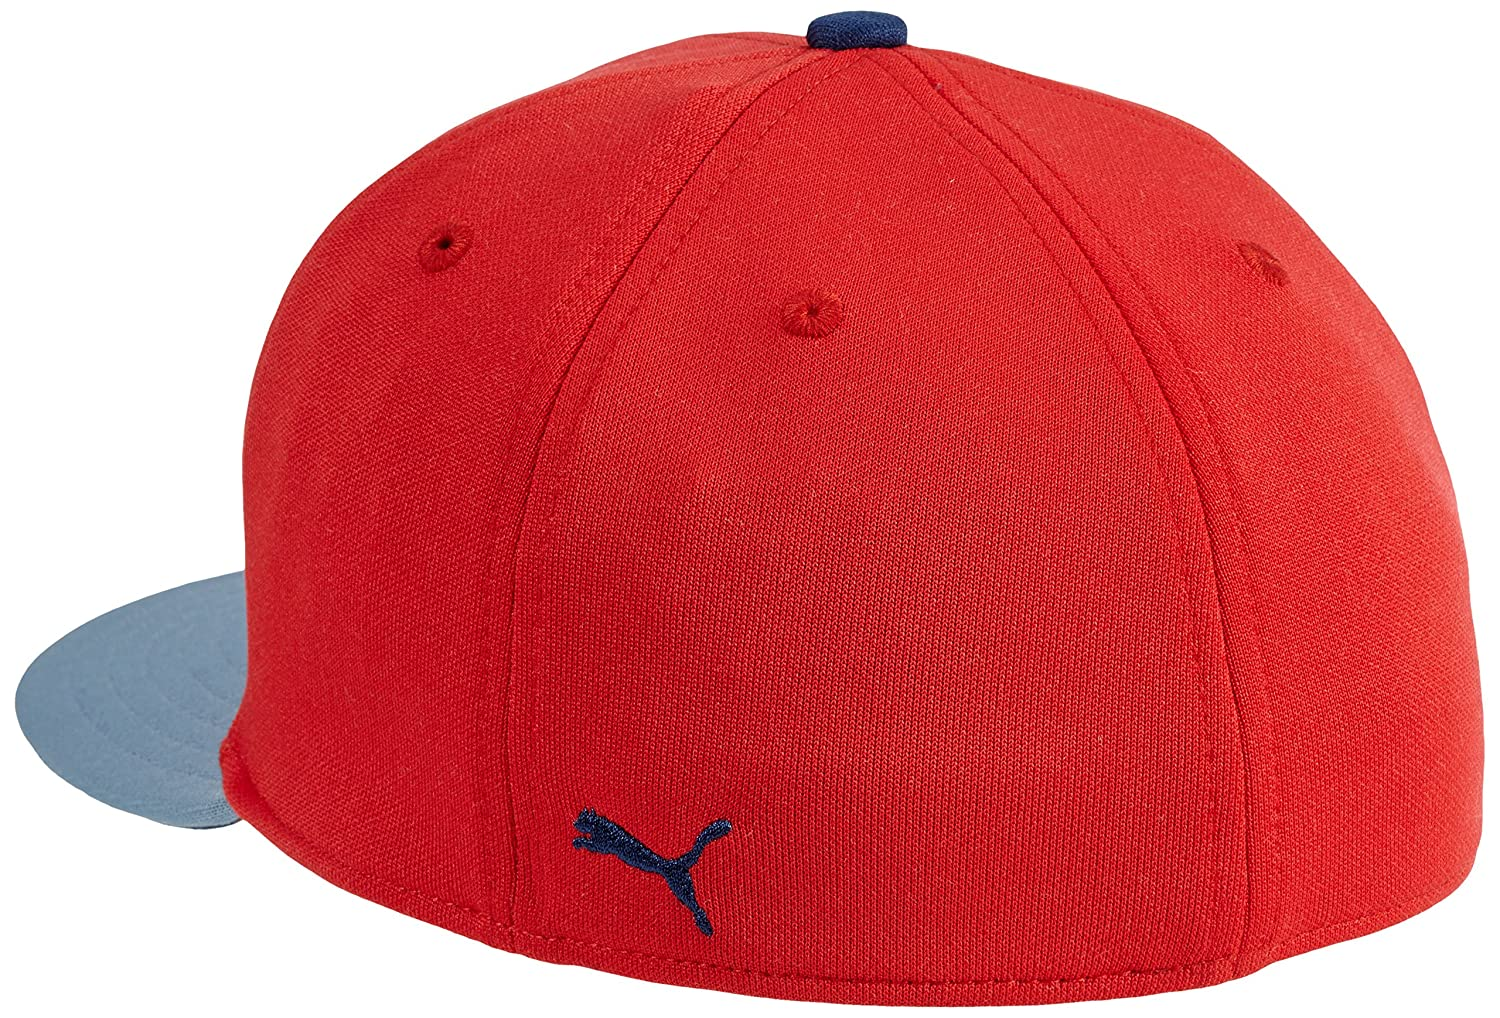 31f295b8 Puma AFC Stretchfit CAP Red High Risk Red Size:One Size: Amazon.co.uk:  Sports & Outdoors